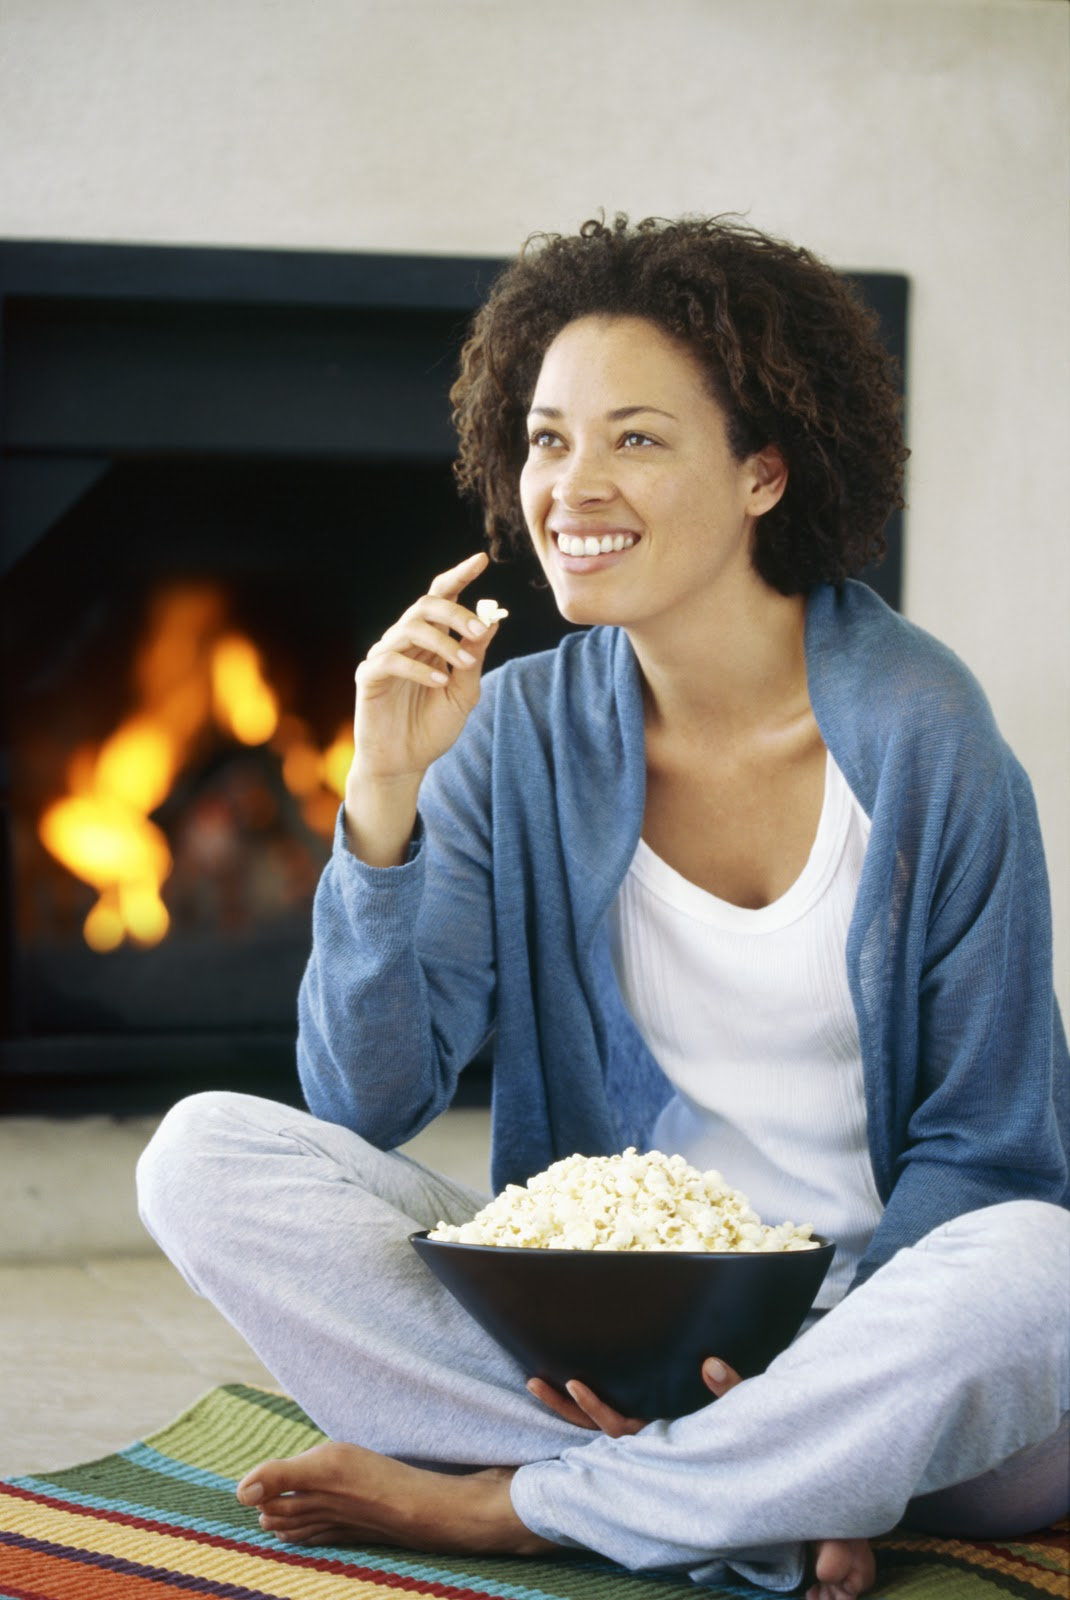 woman_snacking_on_popcorn